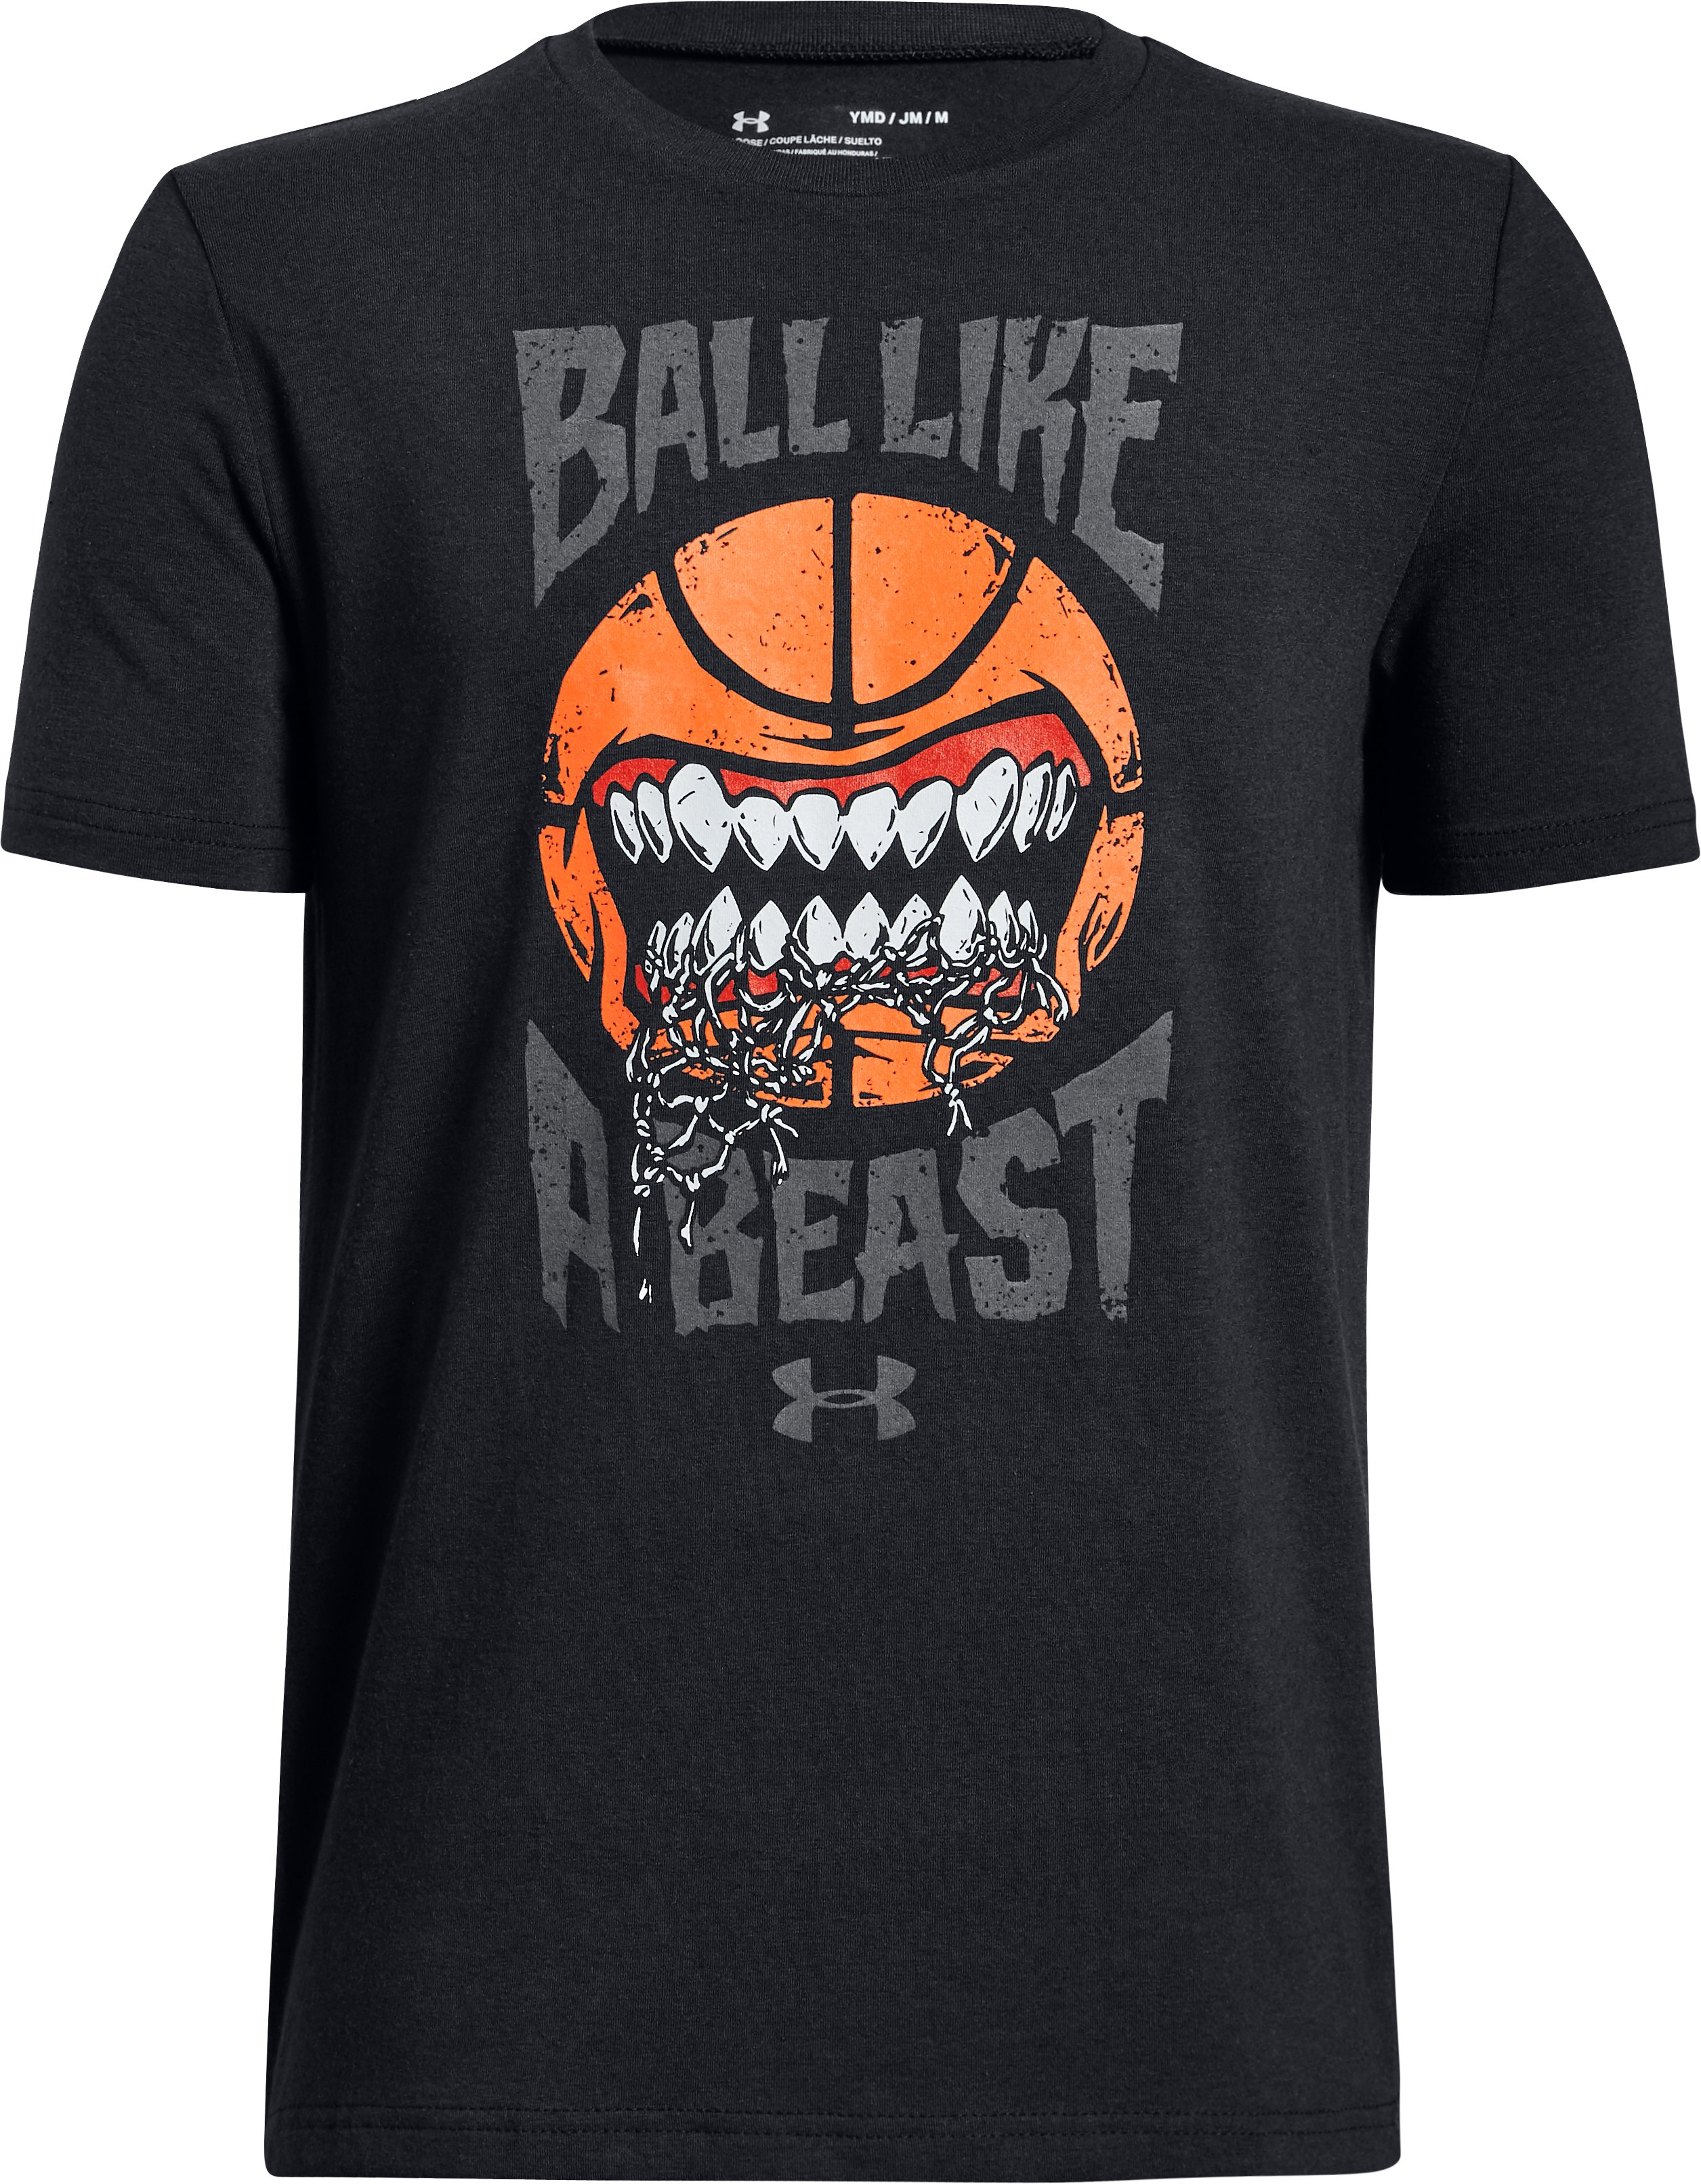 Boys' UA Ball Like A Beast Short Sleeve T-Shirt, Black